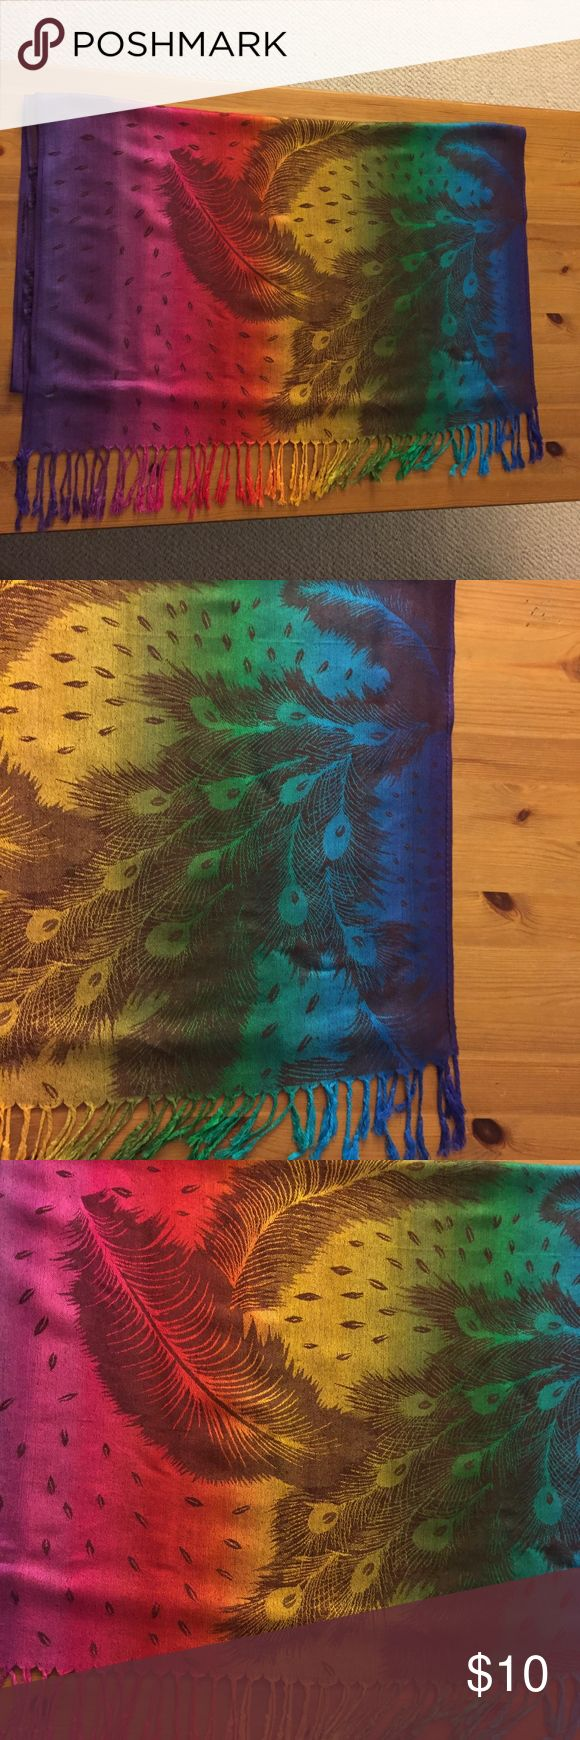 Rainbow Colored Scarf - Peacock Feather Print This colorful scarf is 100% Pashmina (goats wool). The fabric has peacock print with end tassles. It is 66 inches long and 27 inches wide. The scarf does not contain a tag but it has never been used. Unknown Accessories Scarves & Wraps